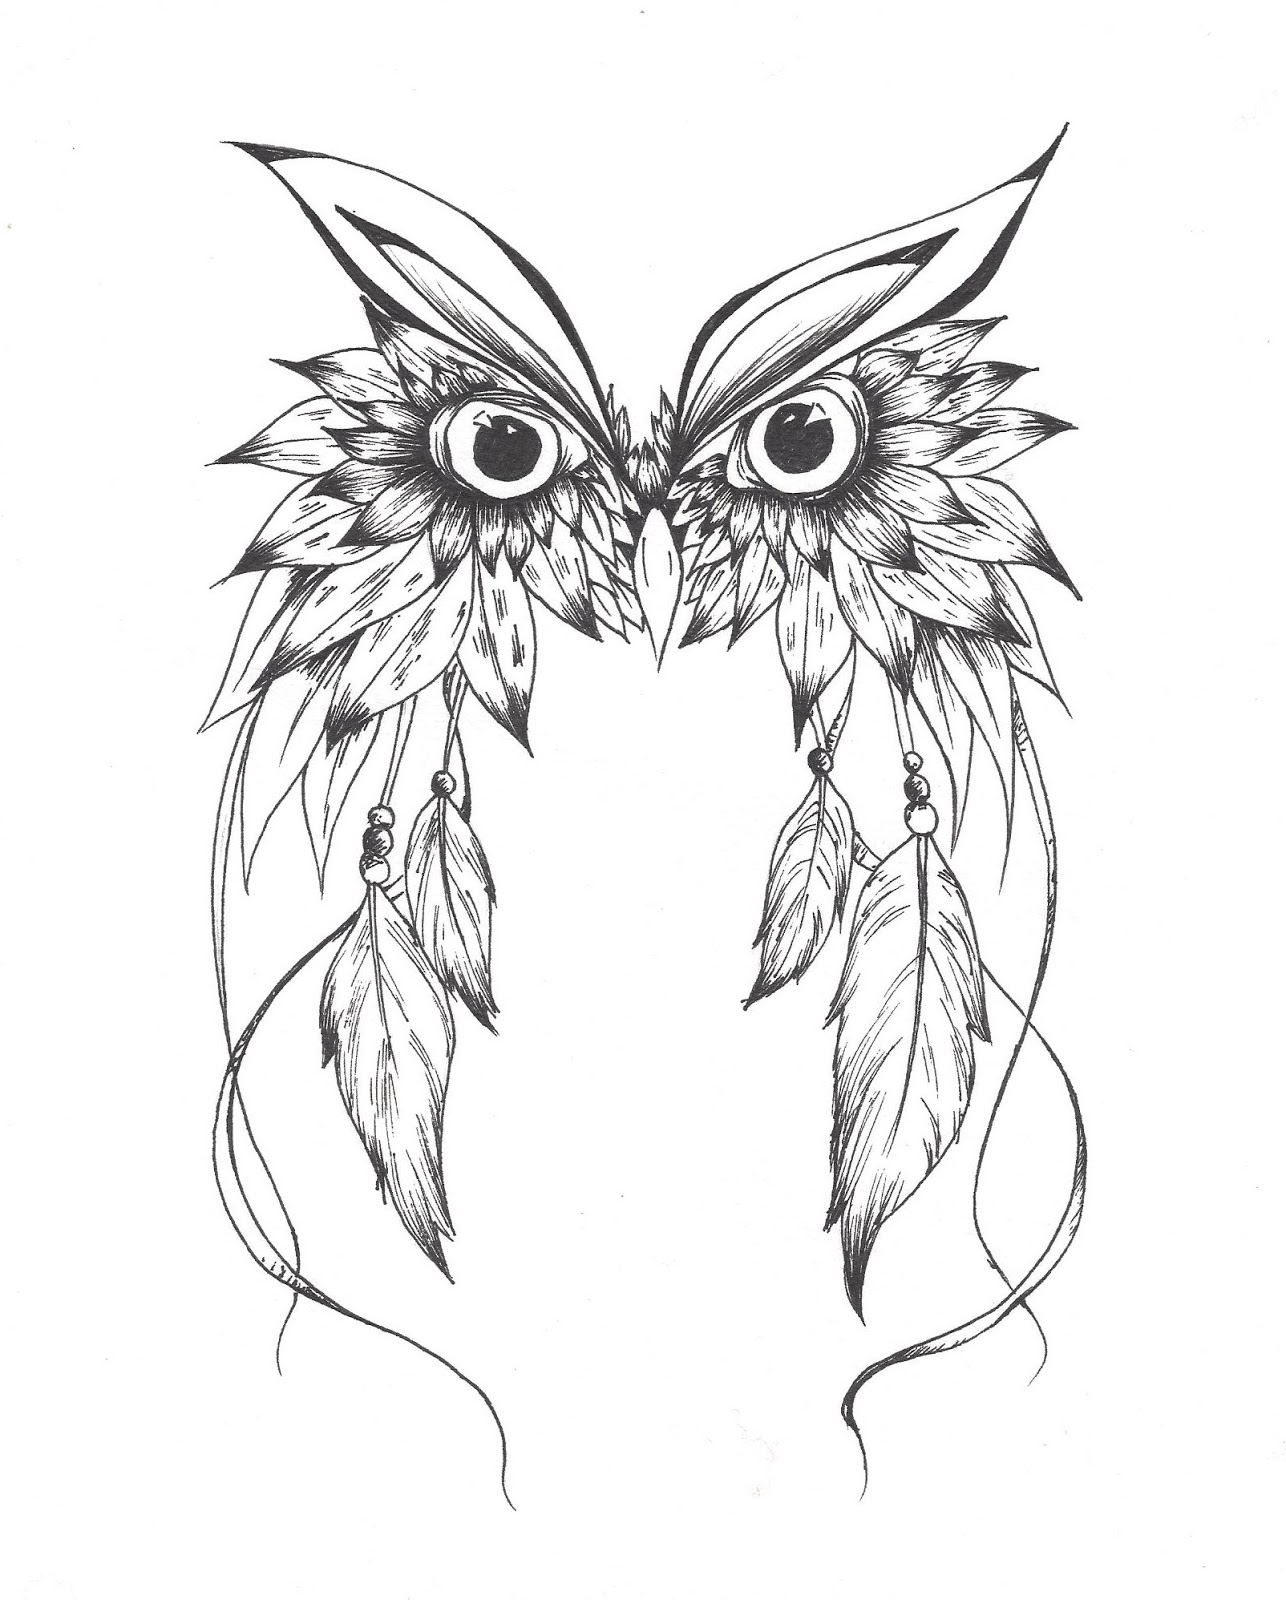 2013 03 01 archive as well 2013 03 01 archive in addition 2013 10 01 archive additionally 2013 03 01 archive likewise Owl Illustrations. on 2013 03 01 archive